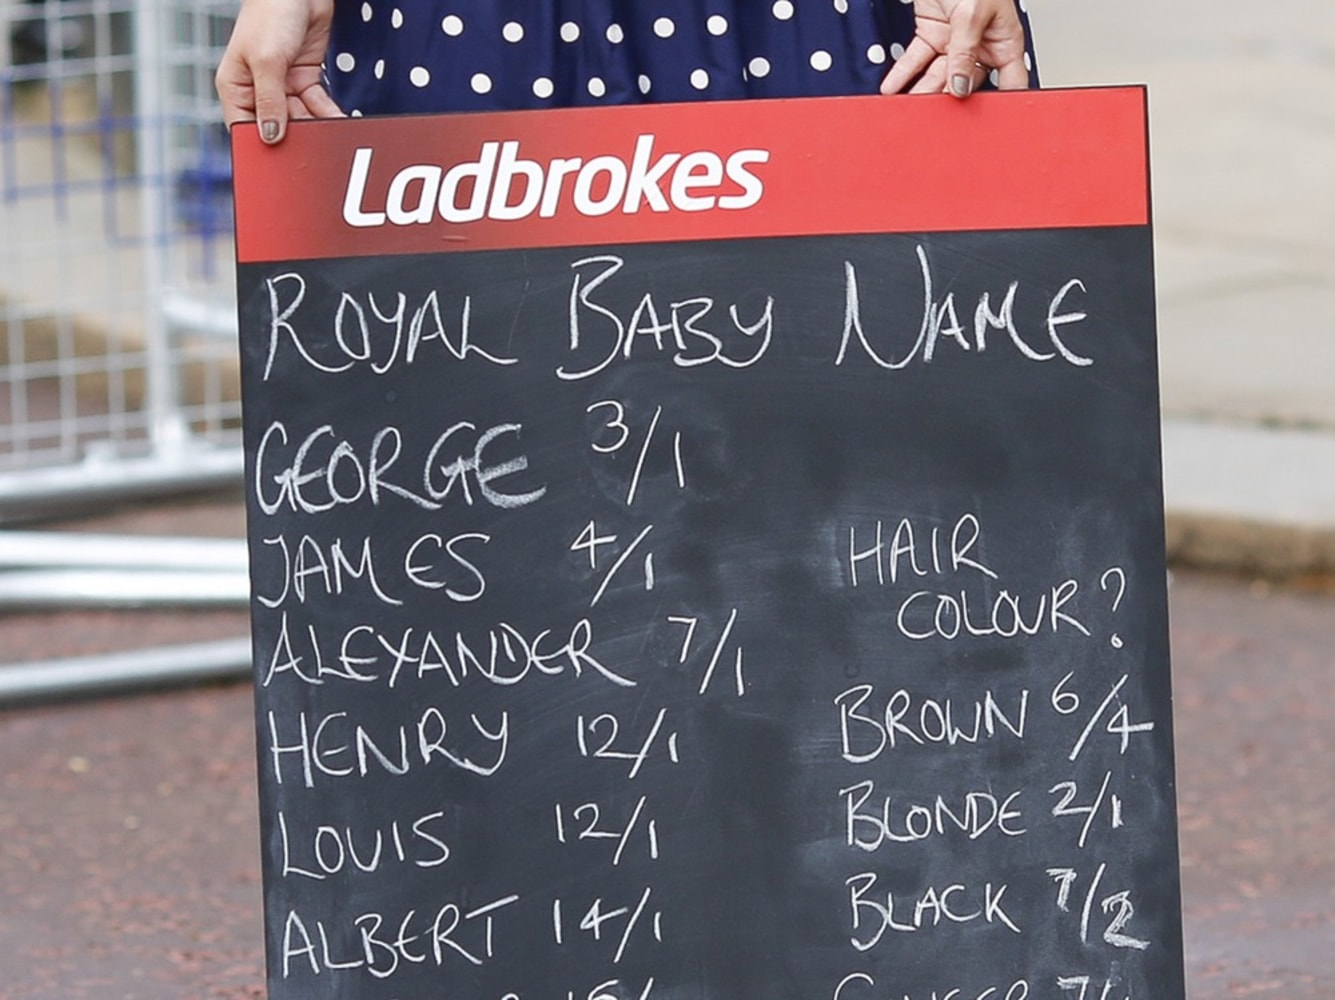 Britain's bookies rake in pounds on baby naming